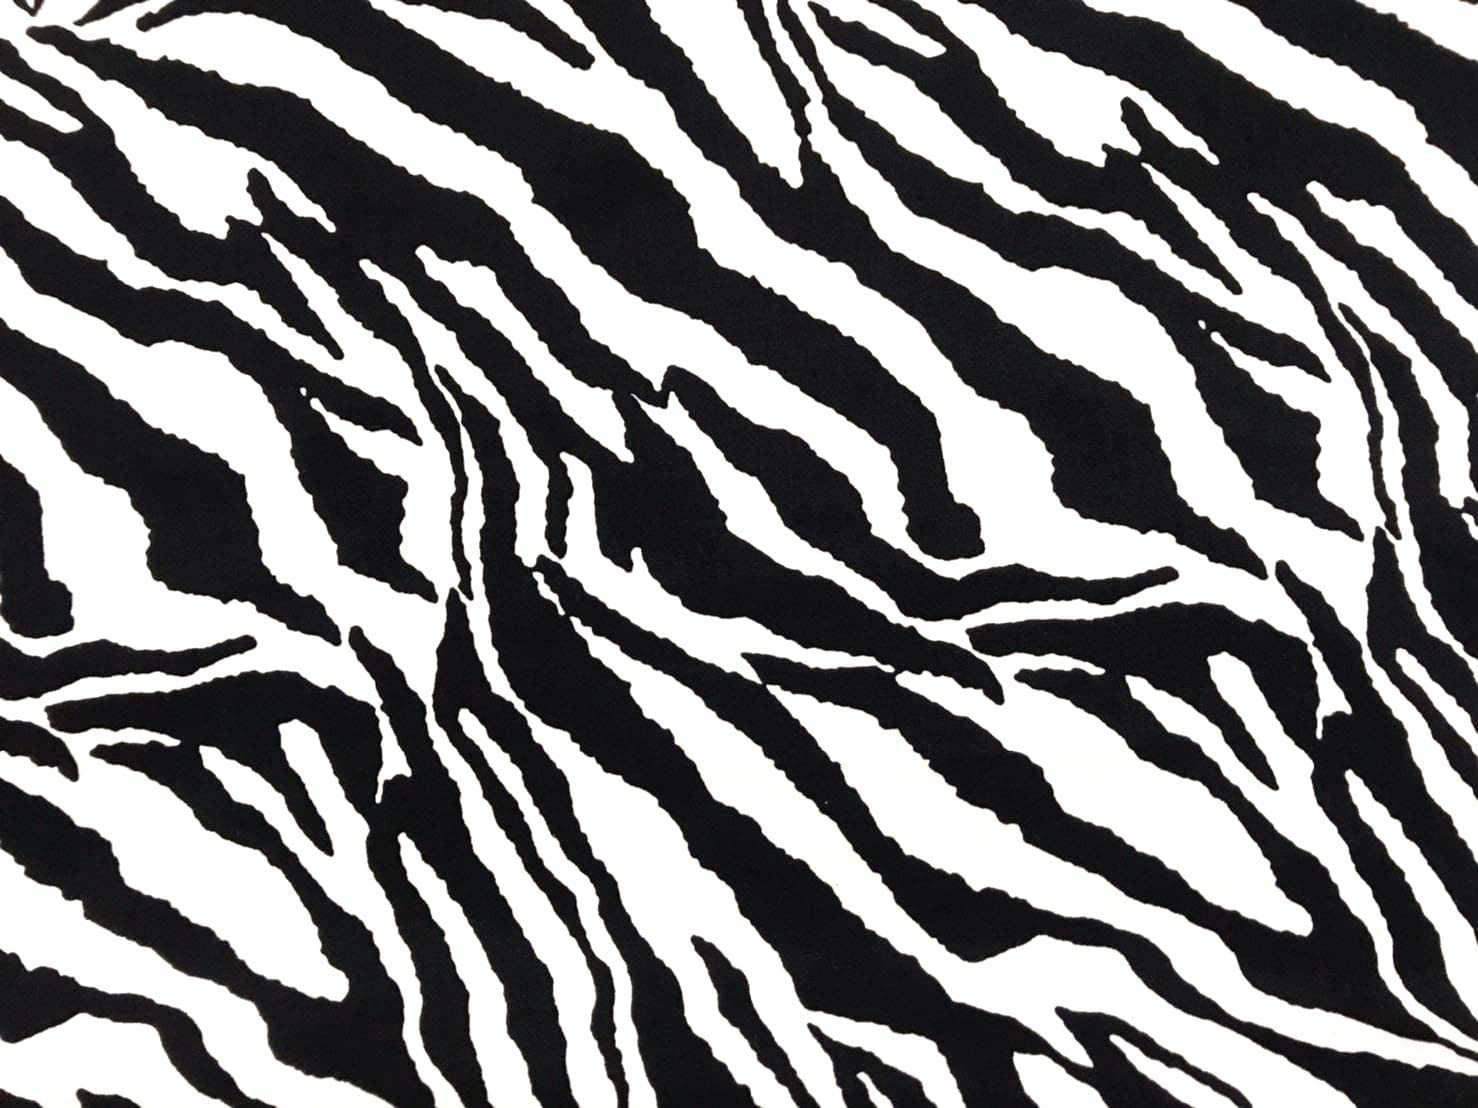 Amornphan 44 Inch Black and White Zebra Pattern Printed 100% Cotton Fabric Craft Cloth Kid Patchwork Handmade Sewing Crafting for 1 Yard